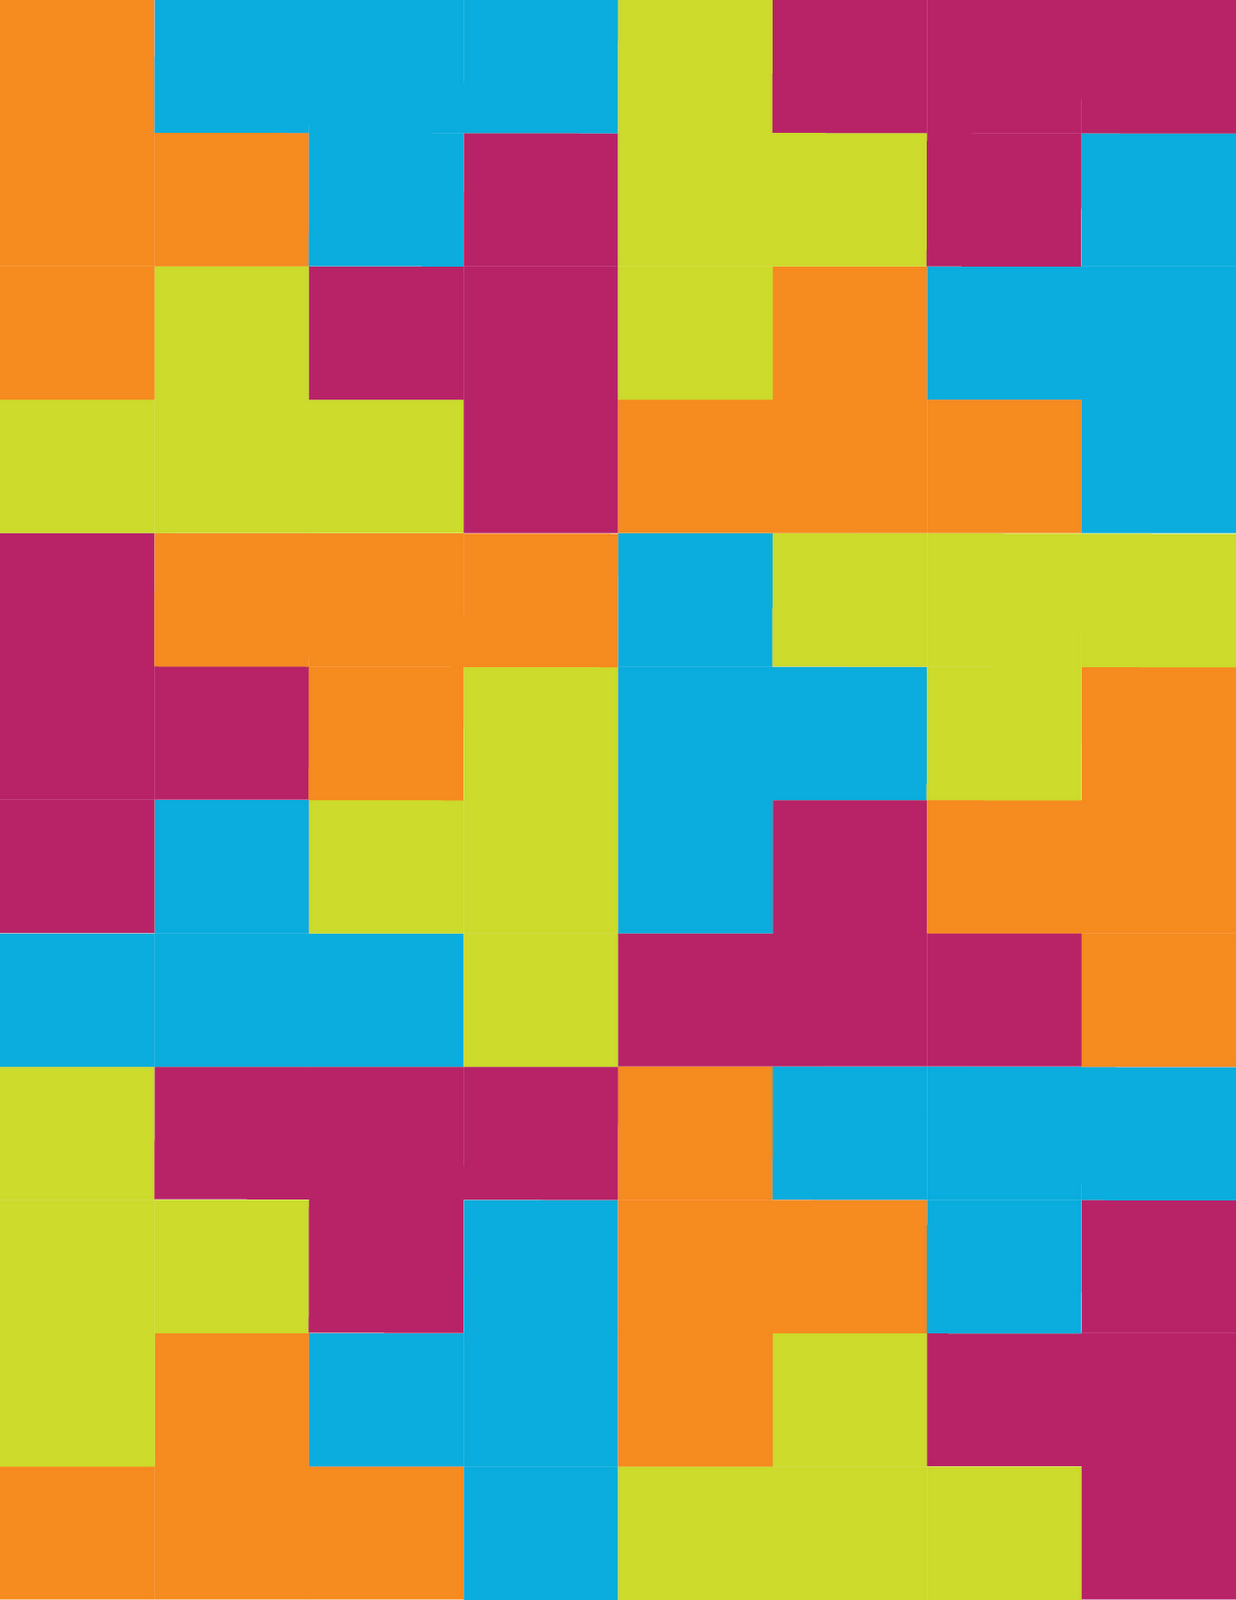 Principles Of Design Shape : Principles of graphic design shape pattern and color